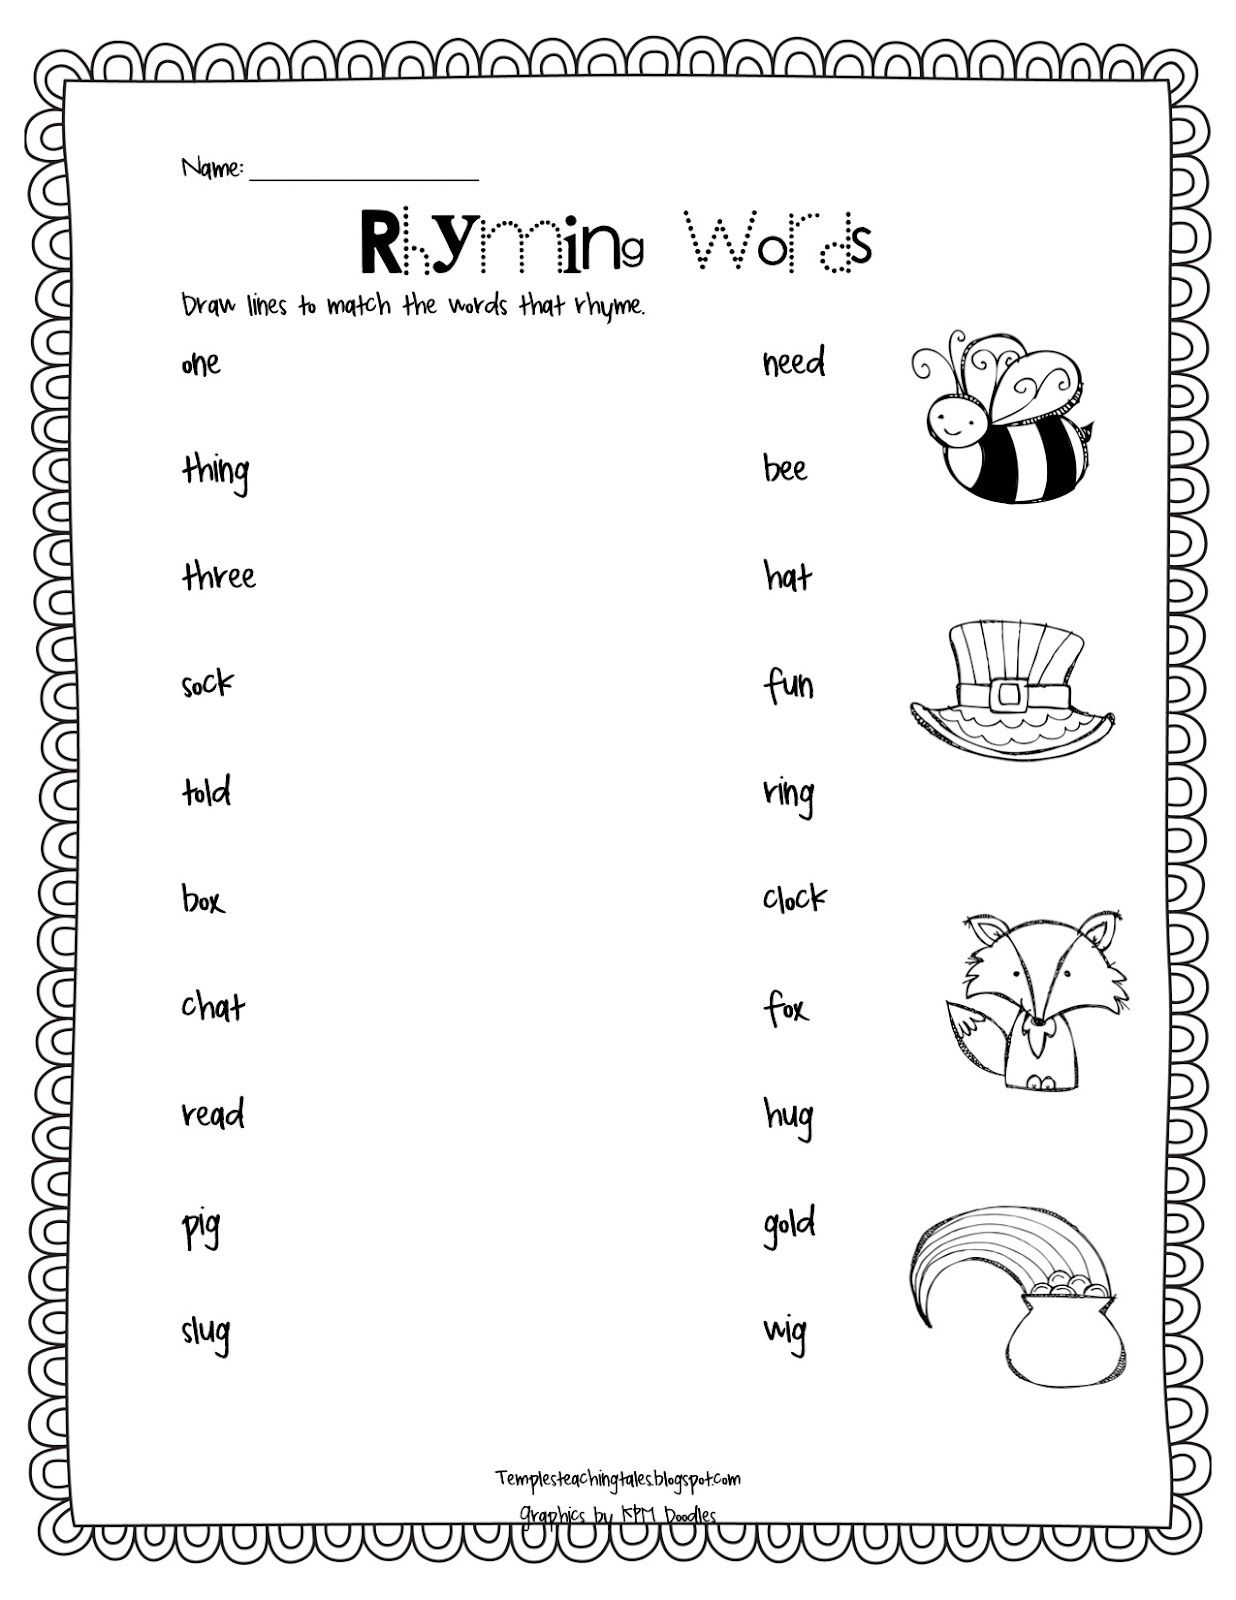 Worksheets Rhyming Words For Grade 1 Worksheets 1000 images about rhyming on pinterest words kids match up temples teaching tales